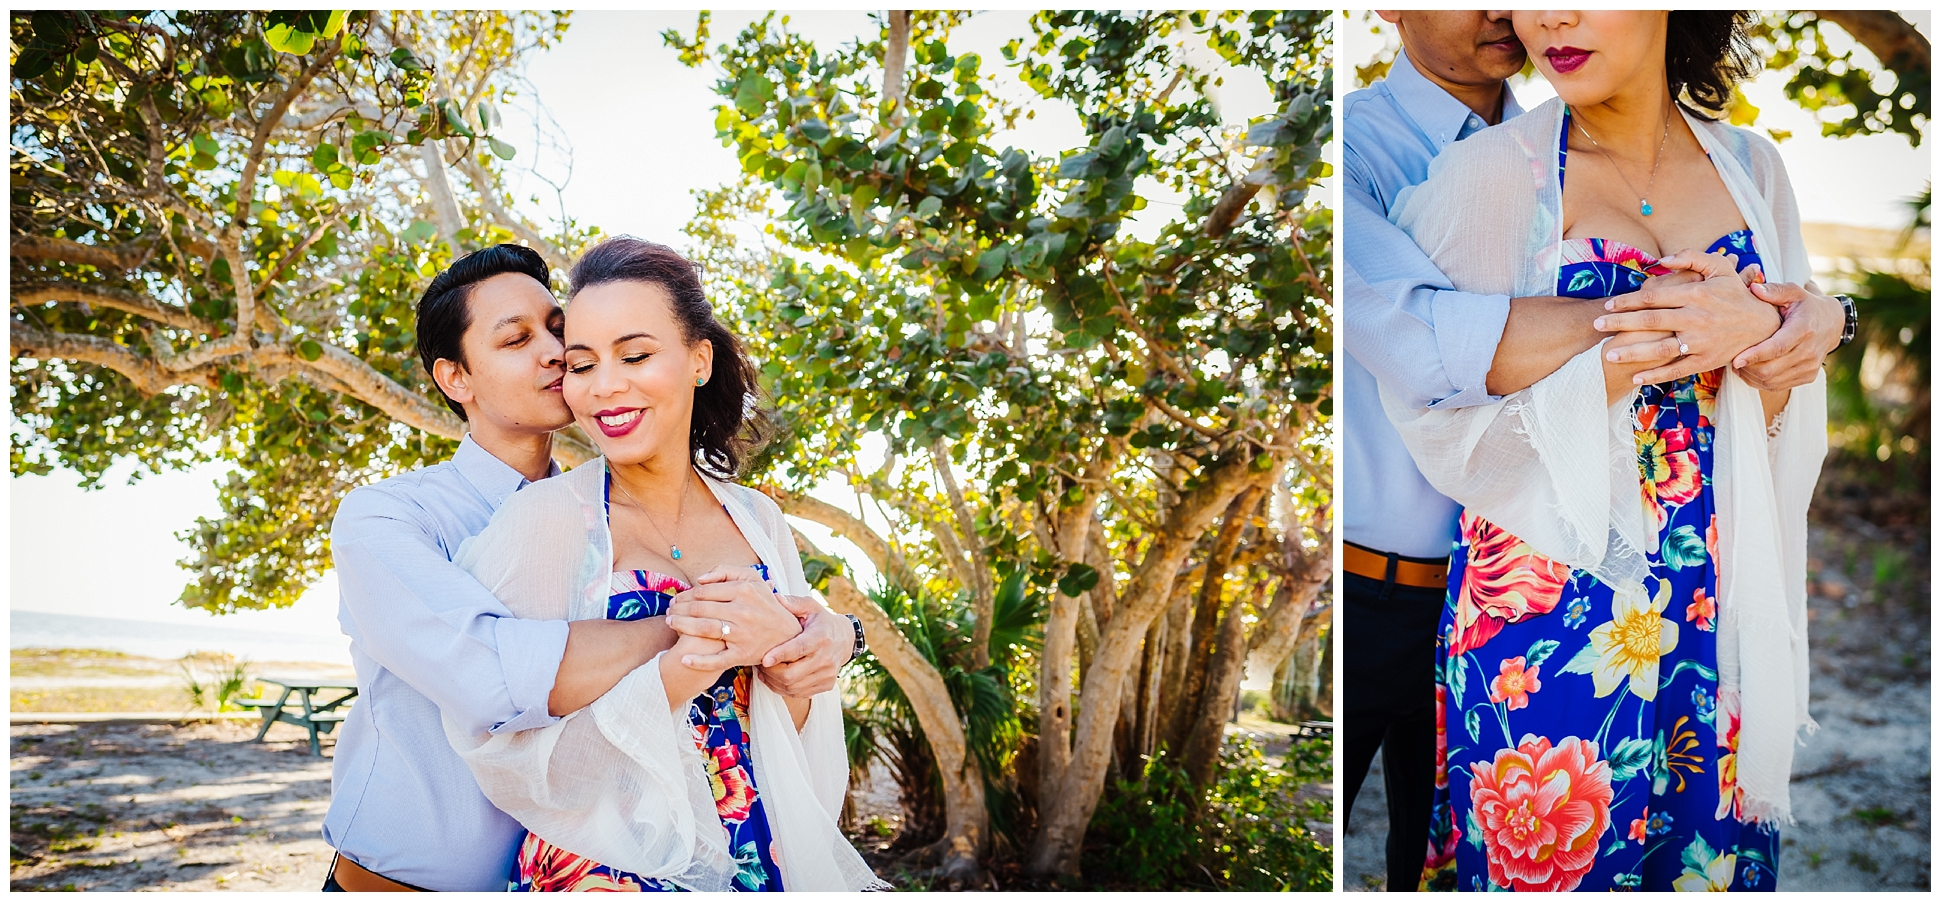 tampa-engagement-photographer-fort-desoto-ruins-sunset-colorful_0002.jpg